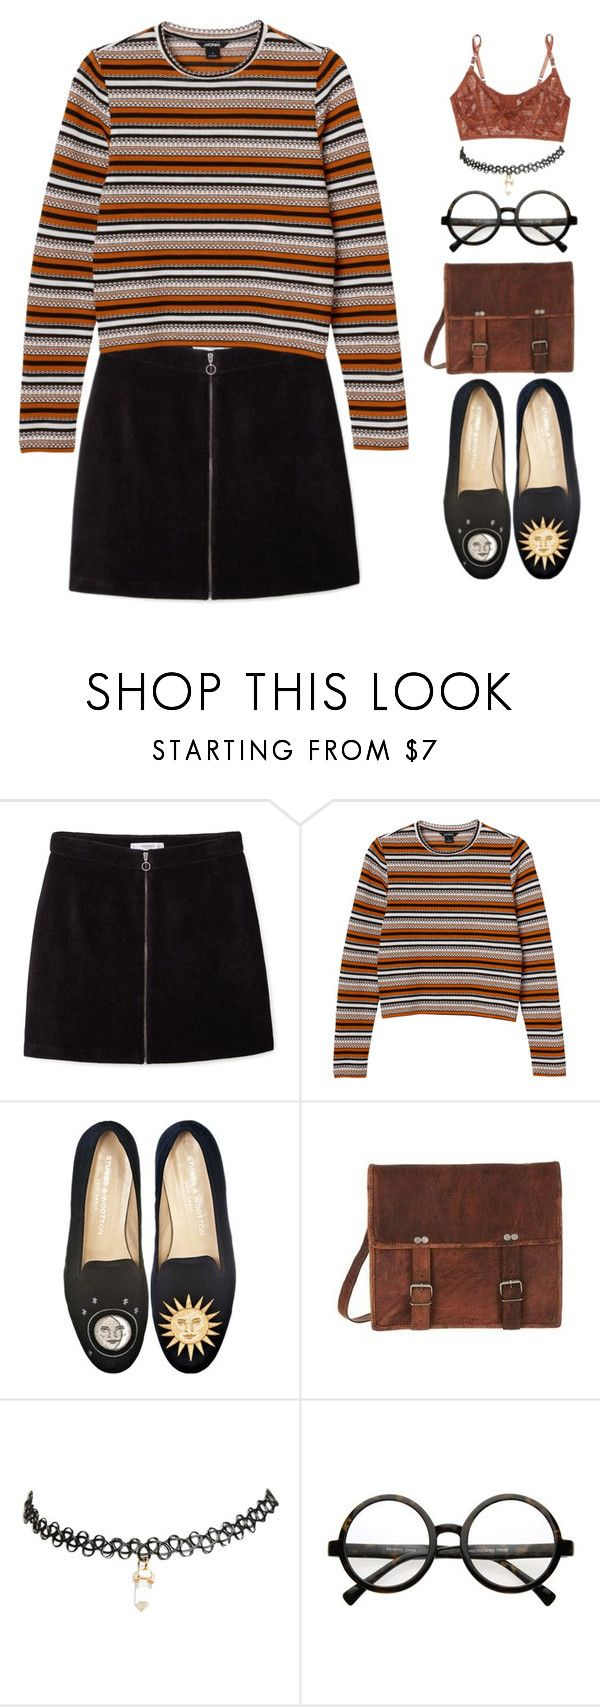 """snap out of it"" by ai-m ❤ liked on Polyvore featuring MANGO, Monki, Wet Seal and Lonely"